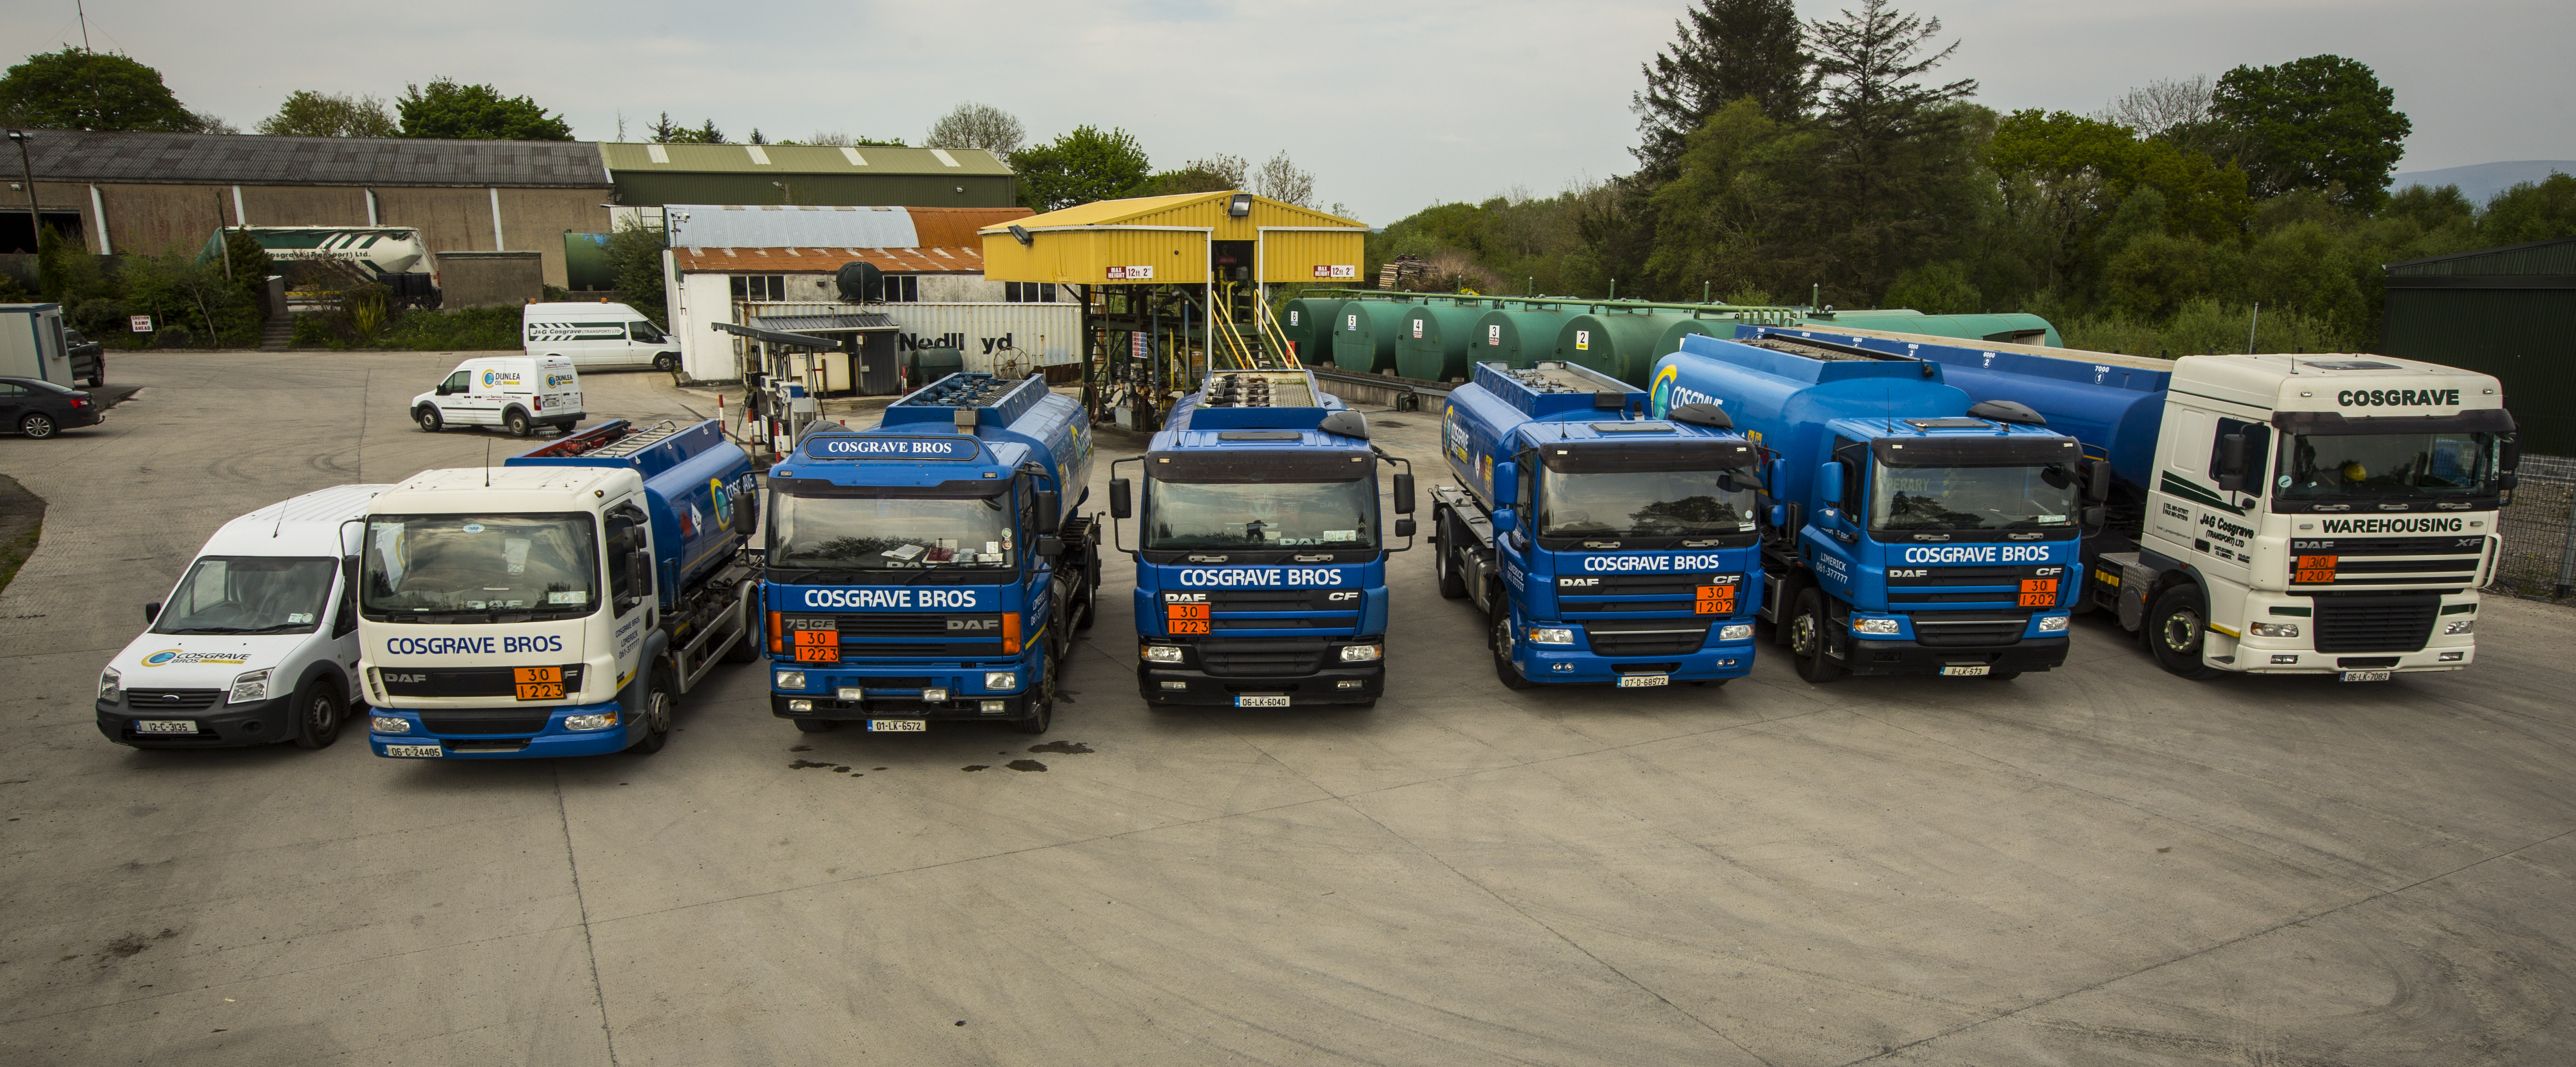 Cosgrave Oil Fuel Delivery Fleet